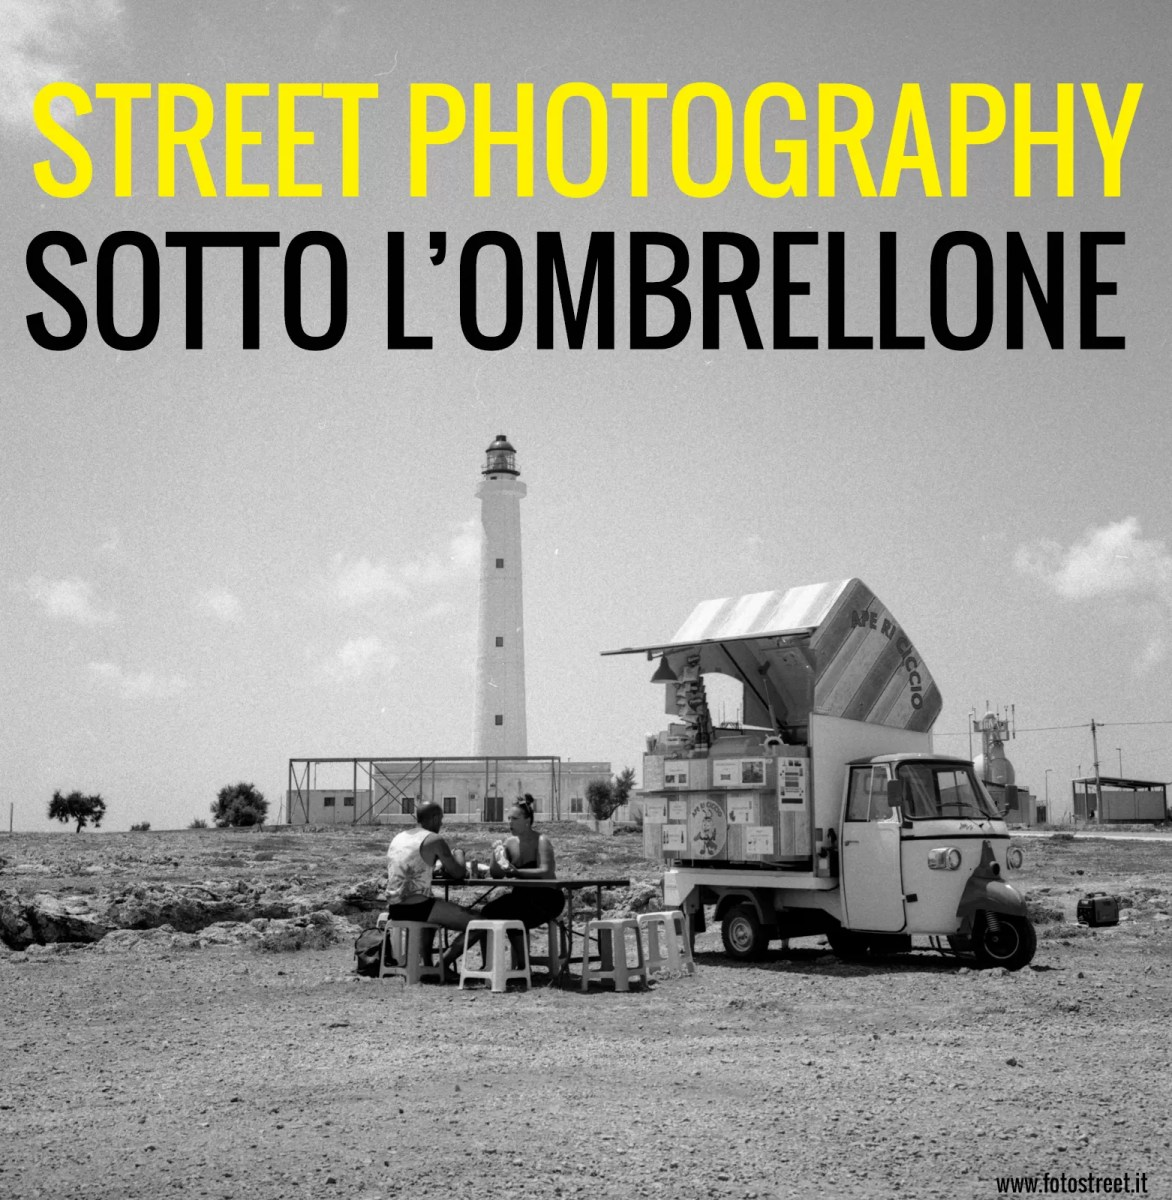 Street photography sotto l'ombrellone